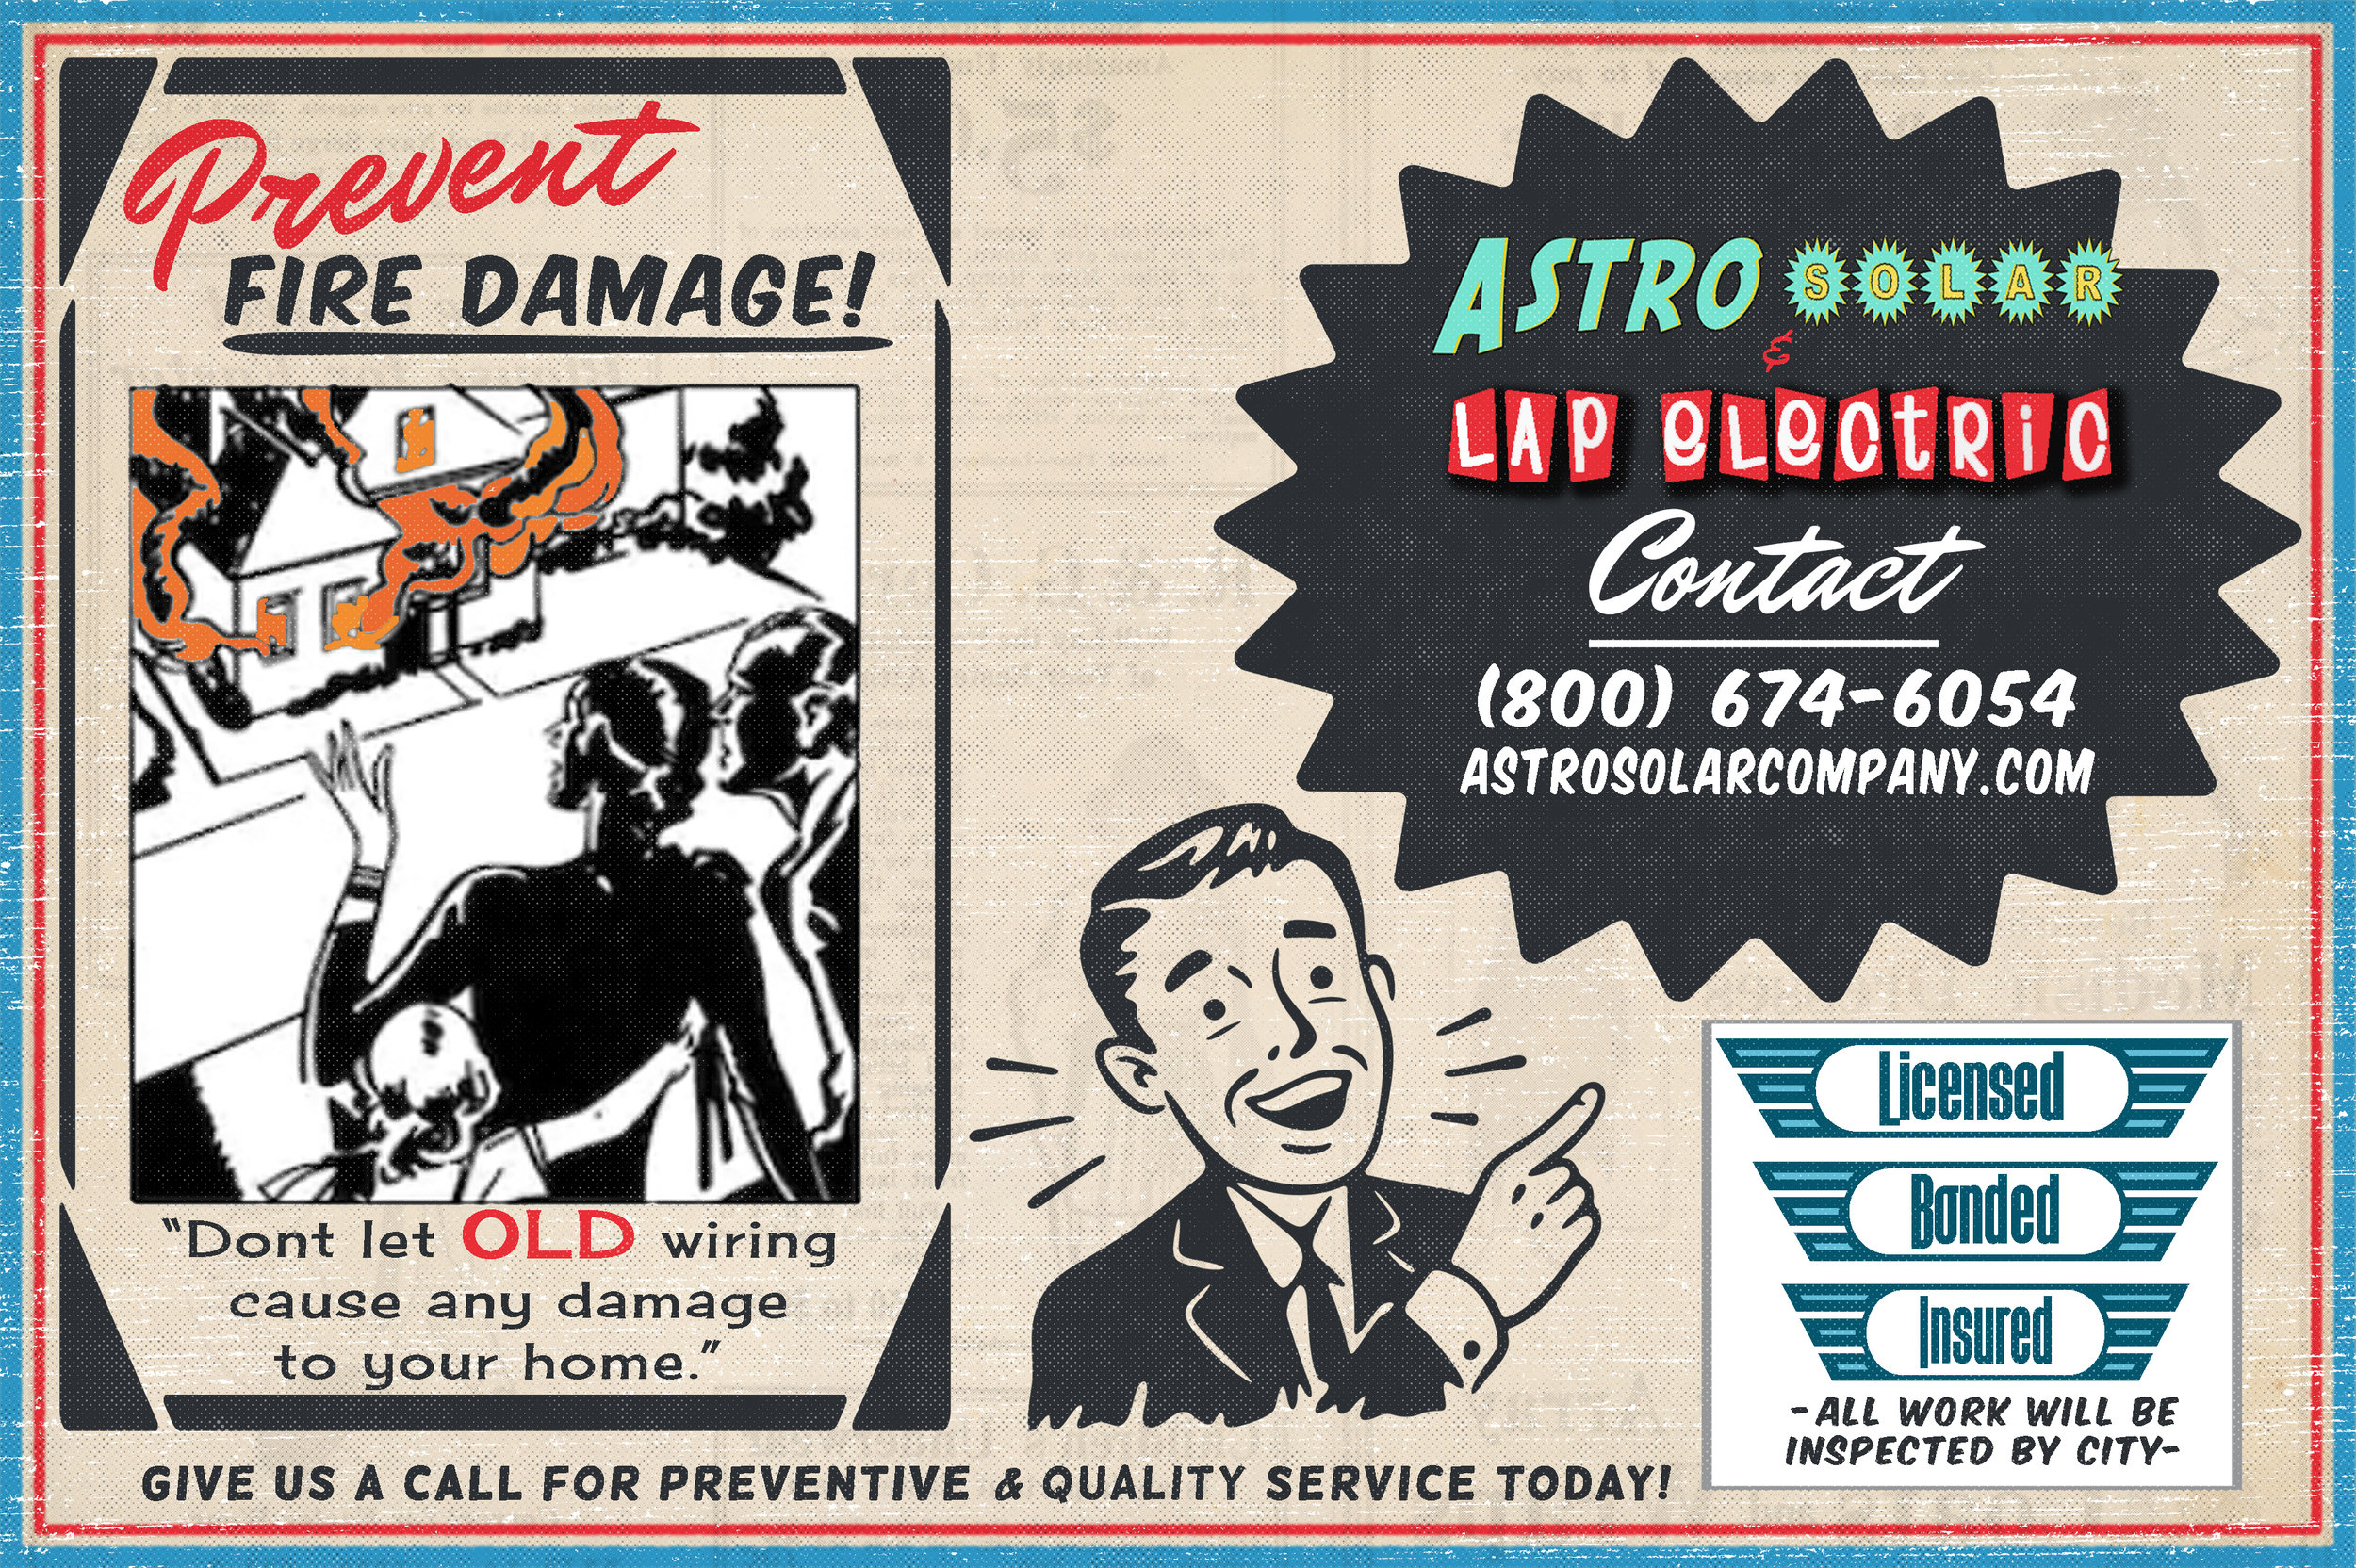 prevent fire damage ad-Recovered.jpg